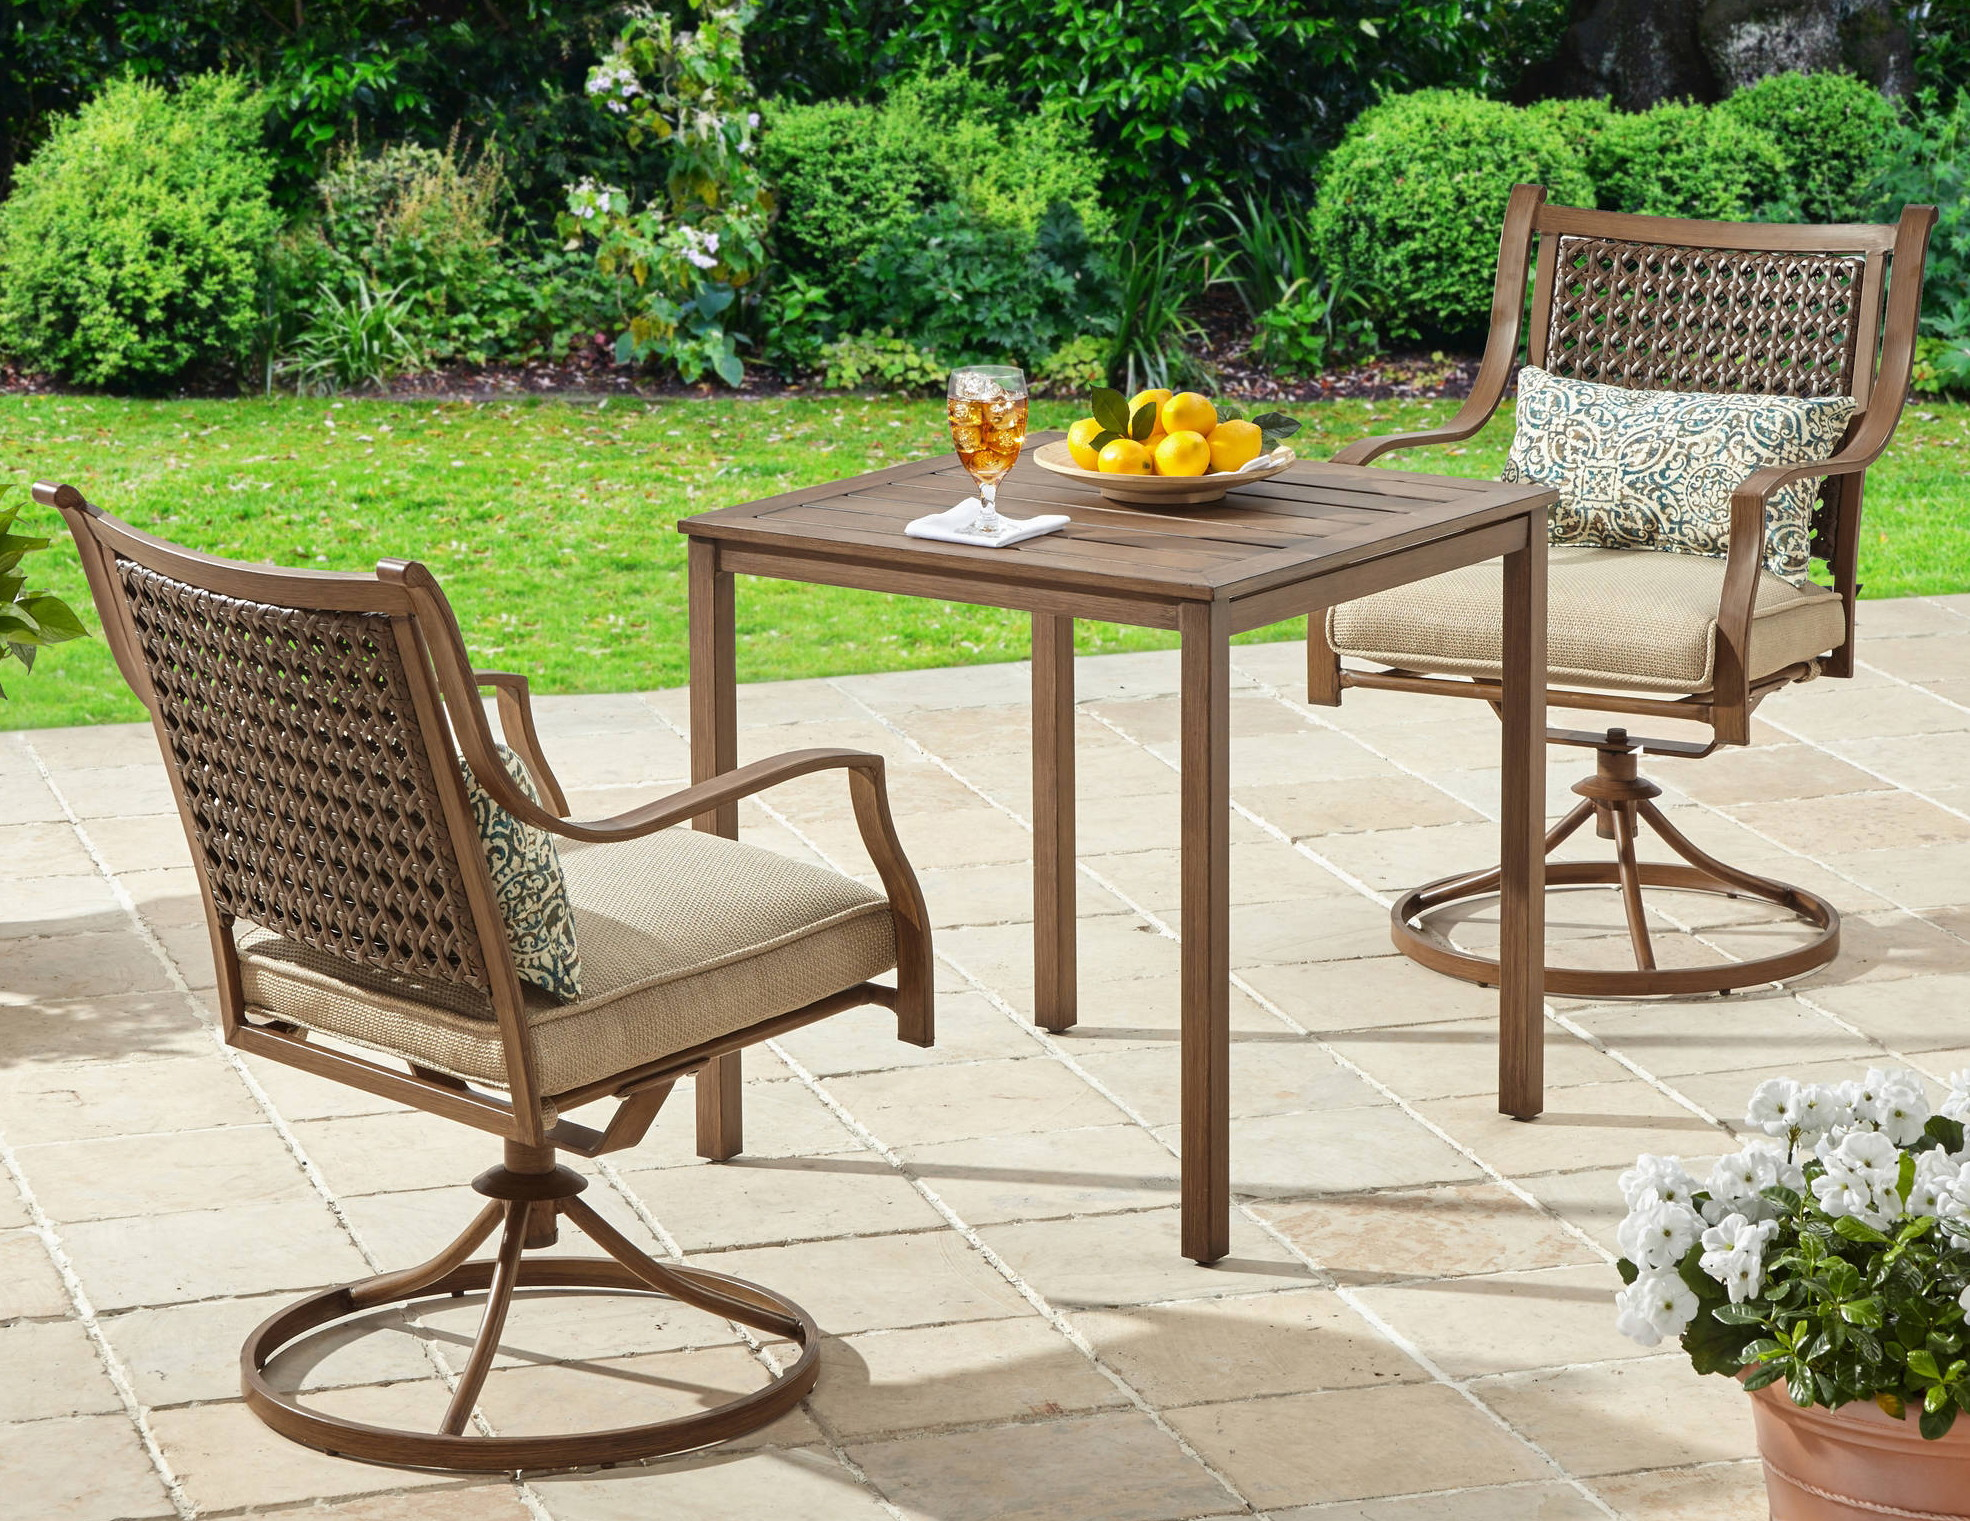 Walmart Com Outdoor Furniture Clearance Patio Sets As Low As 49